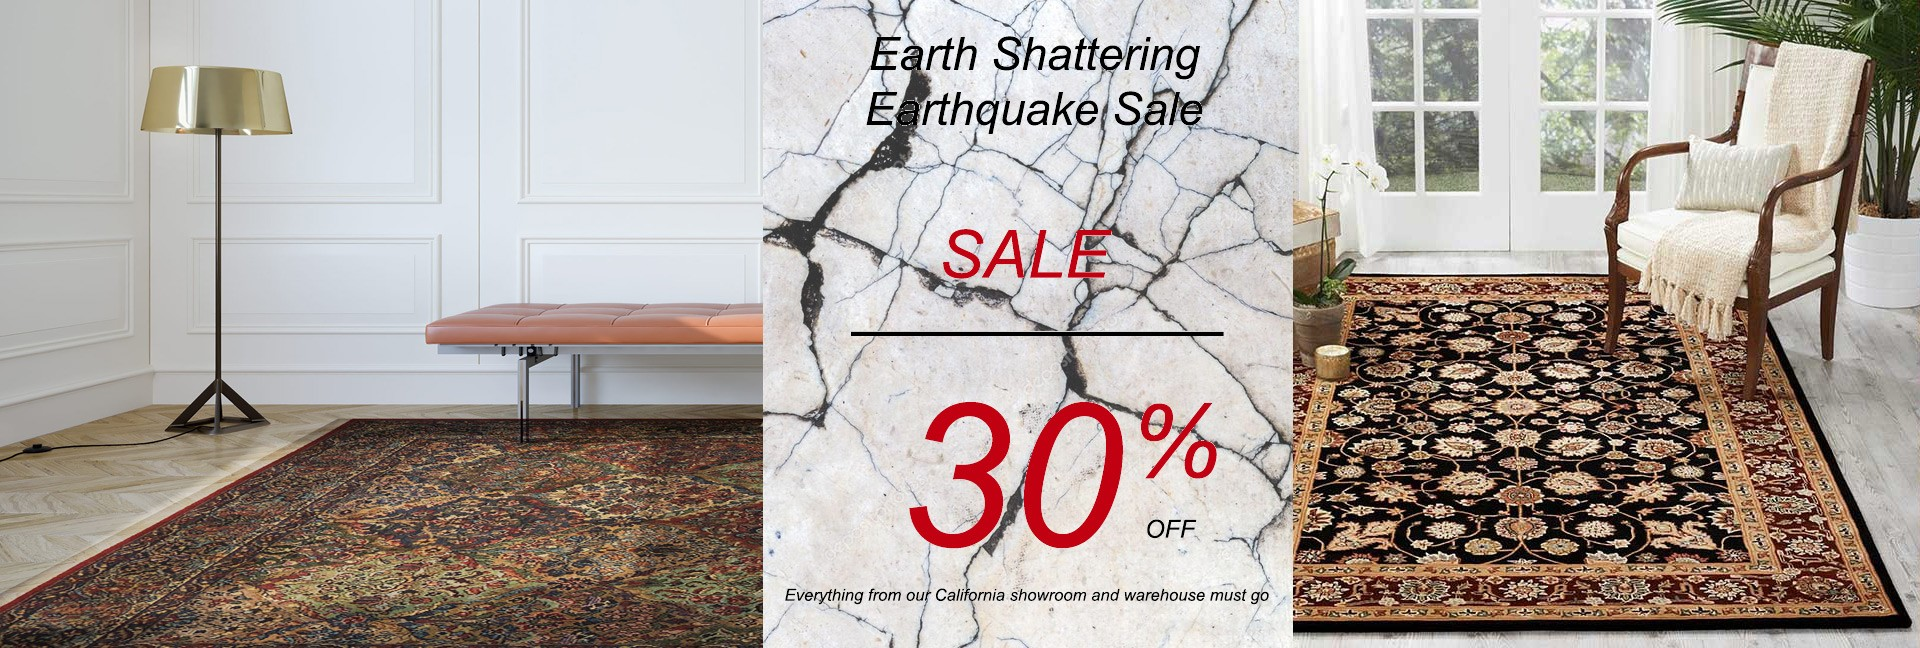 Earthquake Sale